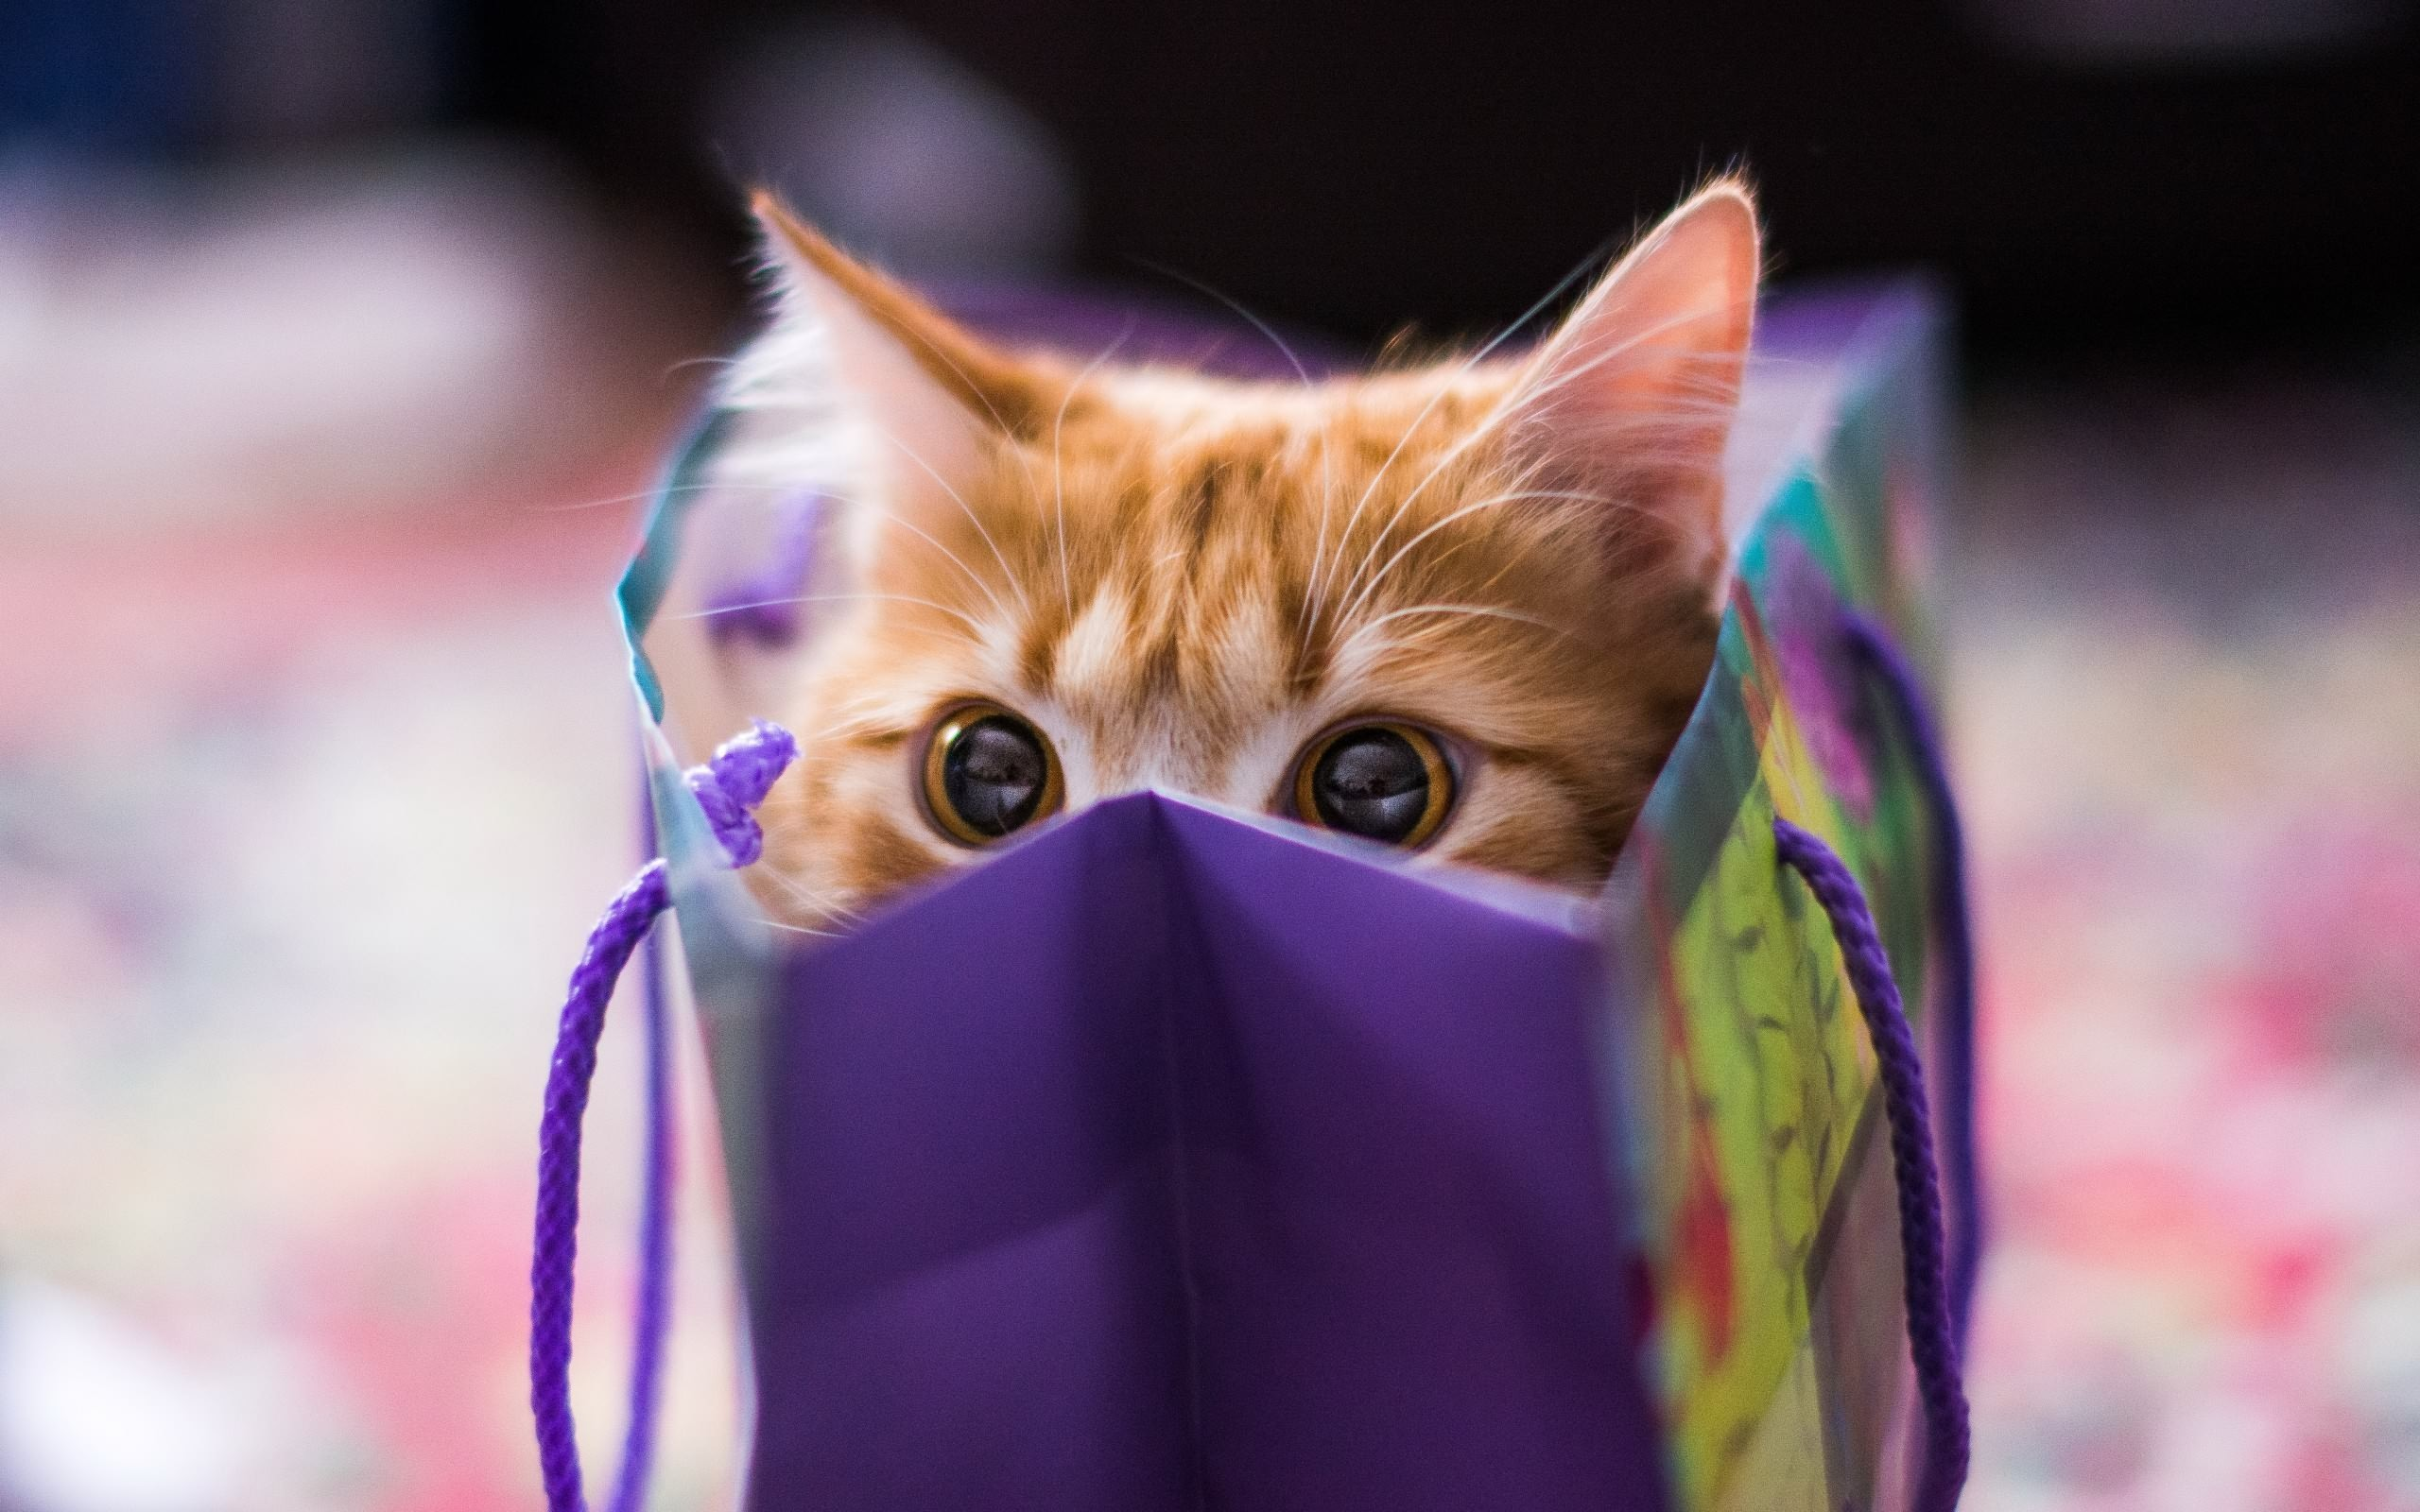 cute-cat-gift-package-wide-1461848694.jpg